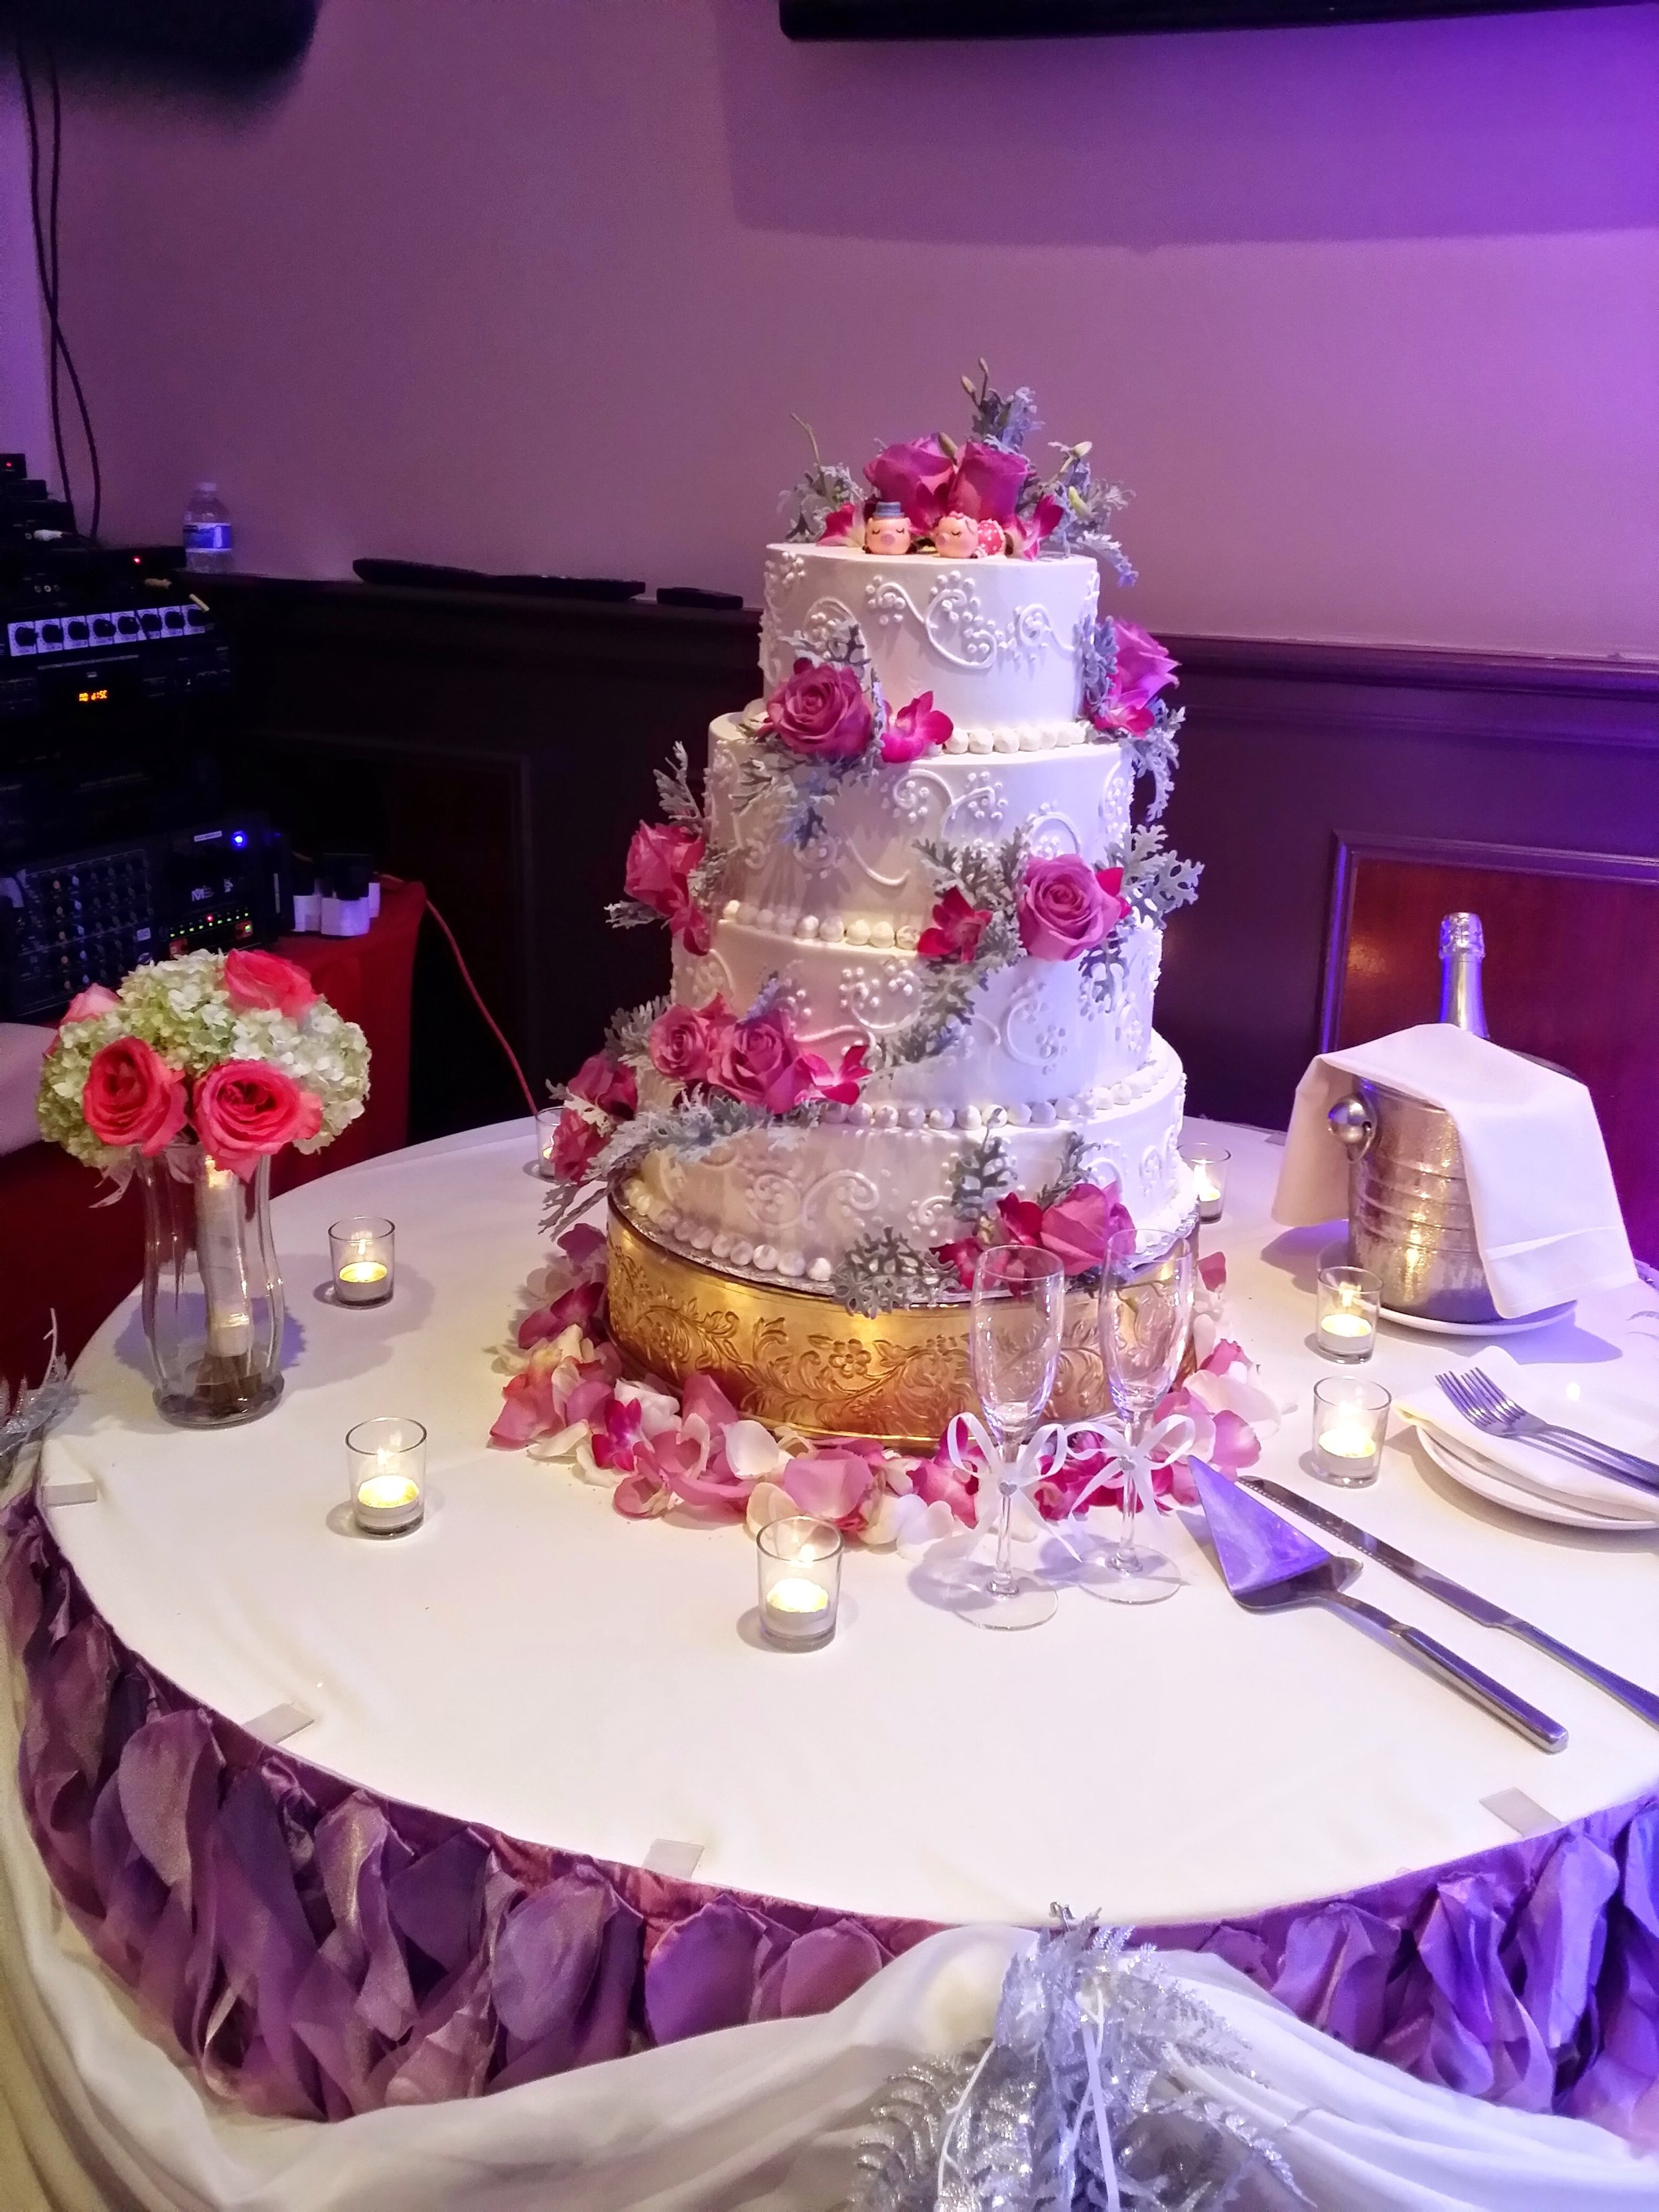 - This lovely 4-tiered cake had such intricate piping that we wanted to make sure we didn't take away from it. We also knew that there needed to be a pop of color to draw the attention of wedding guests, so we scattered roses and dusty miller sparsely around the wedding cake.